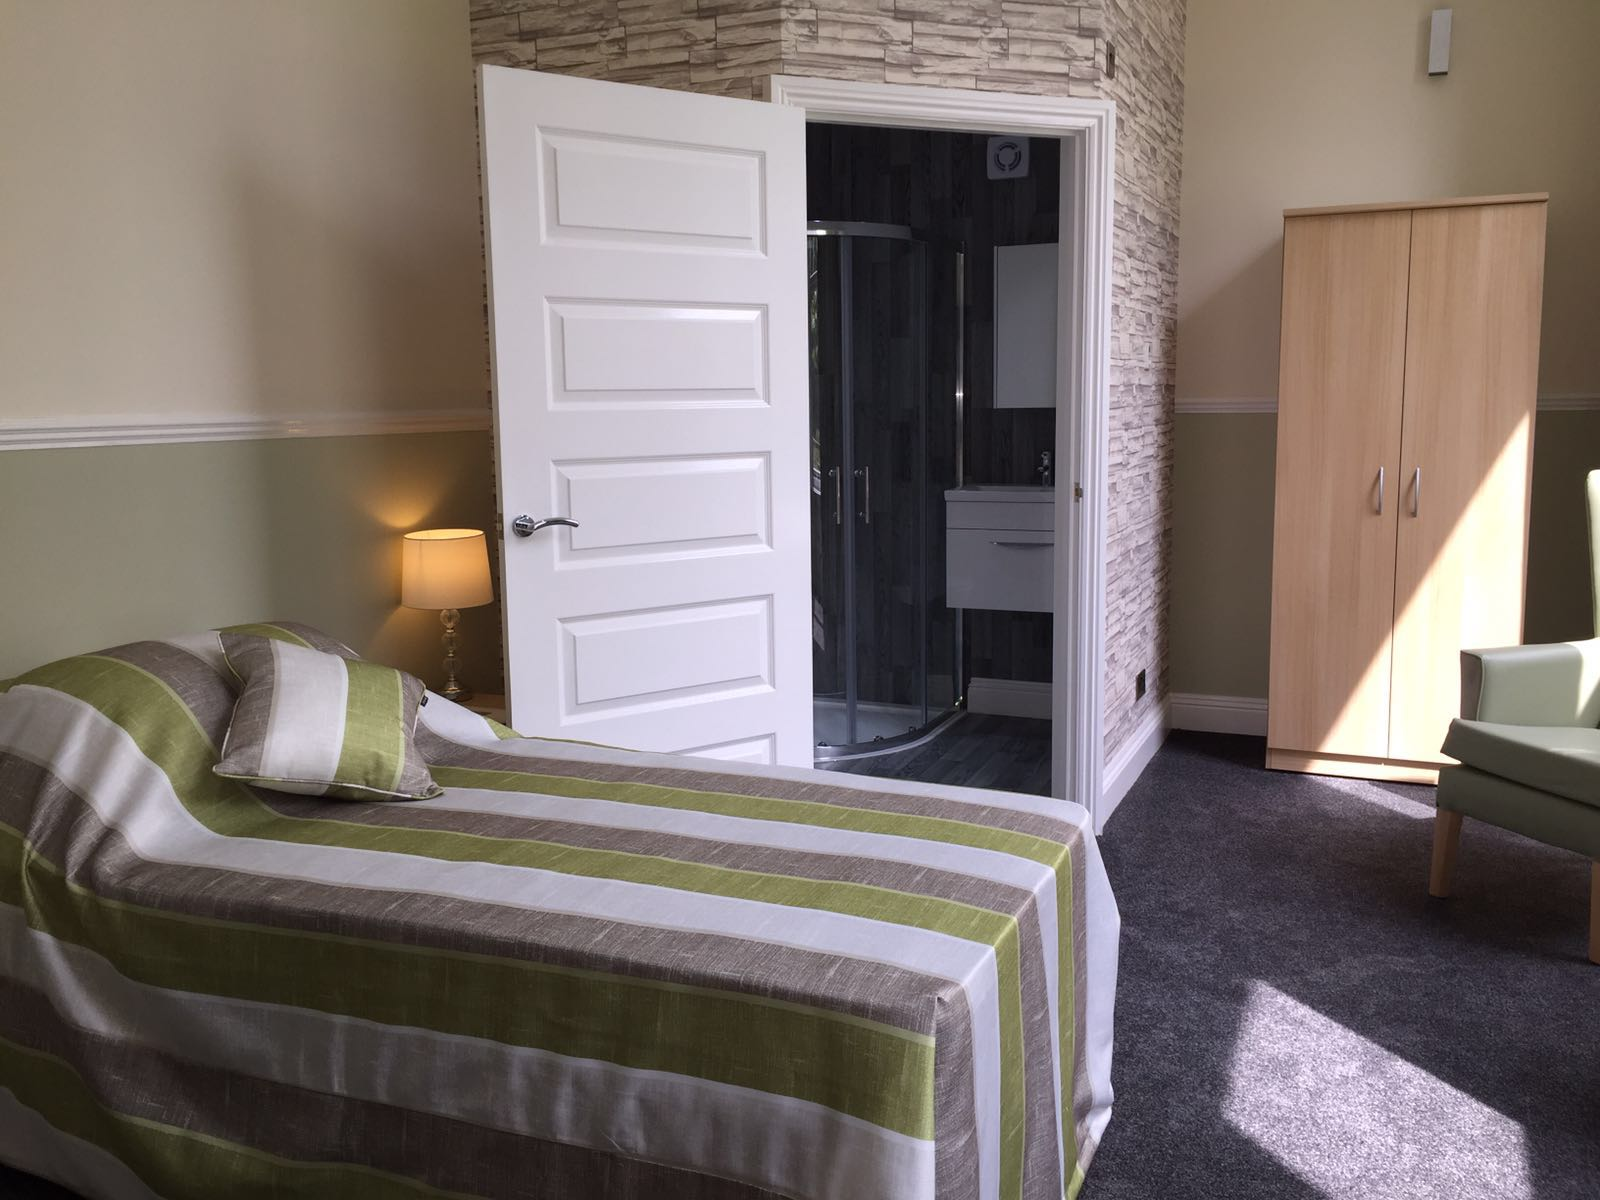 Shedfield Lodge Care Home Dementia Specialist Luxury Accomodation 8